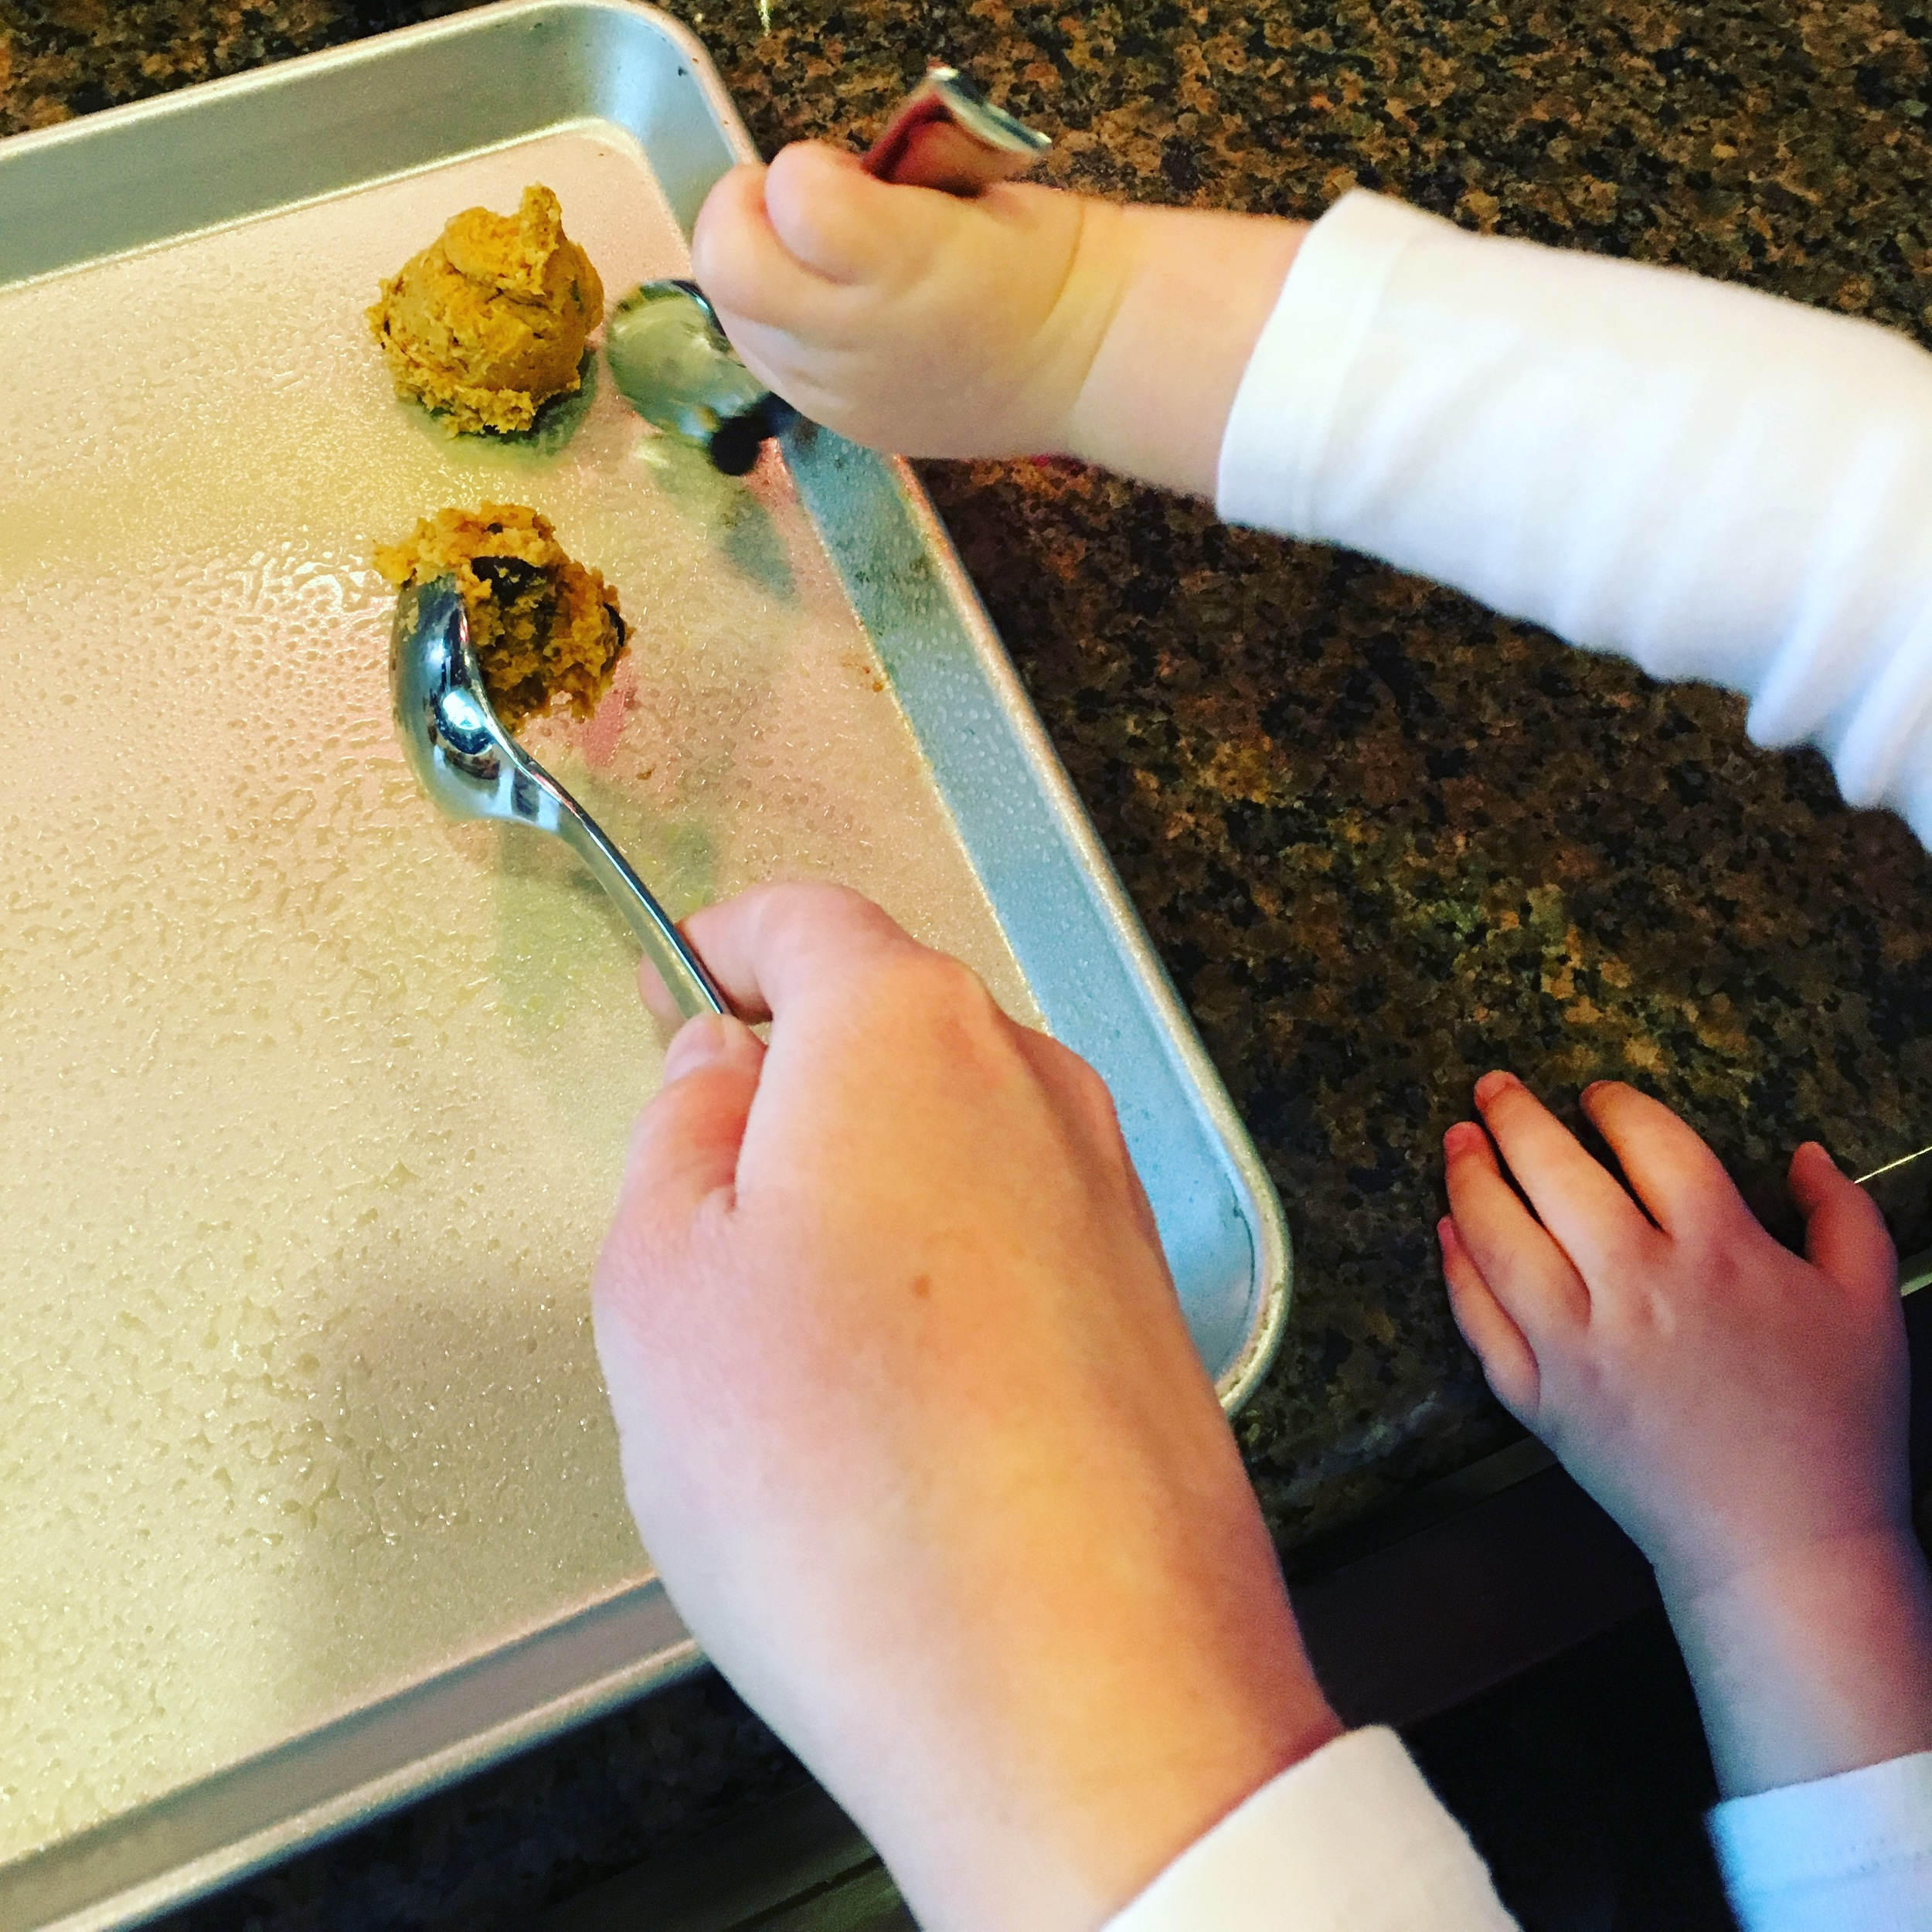 Hold the dough on one spoon, and let your kiddo spoon it onto the baking sheet.